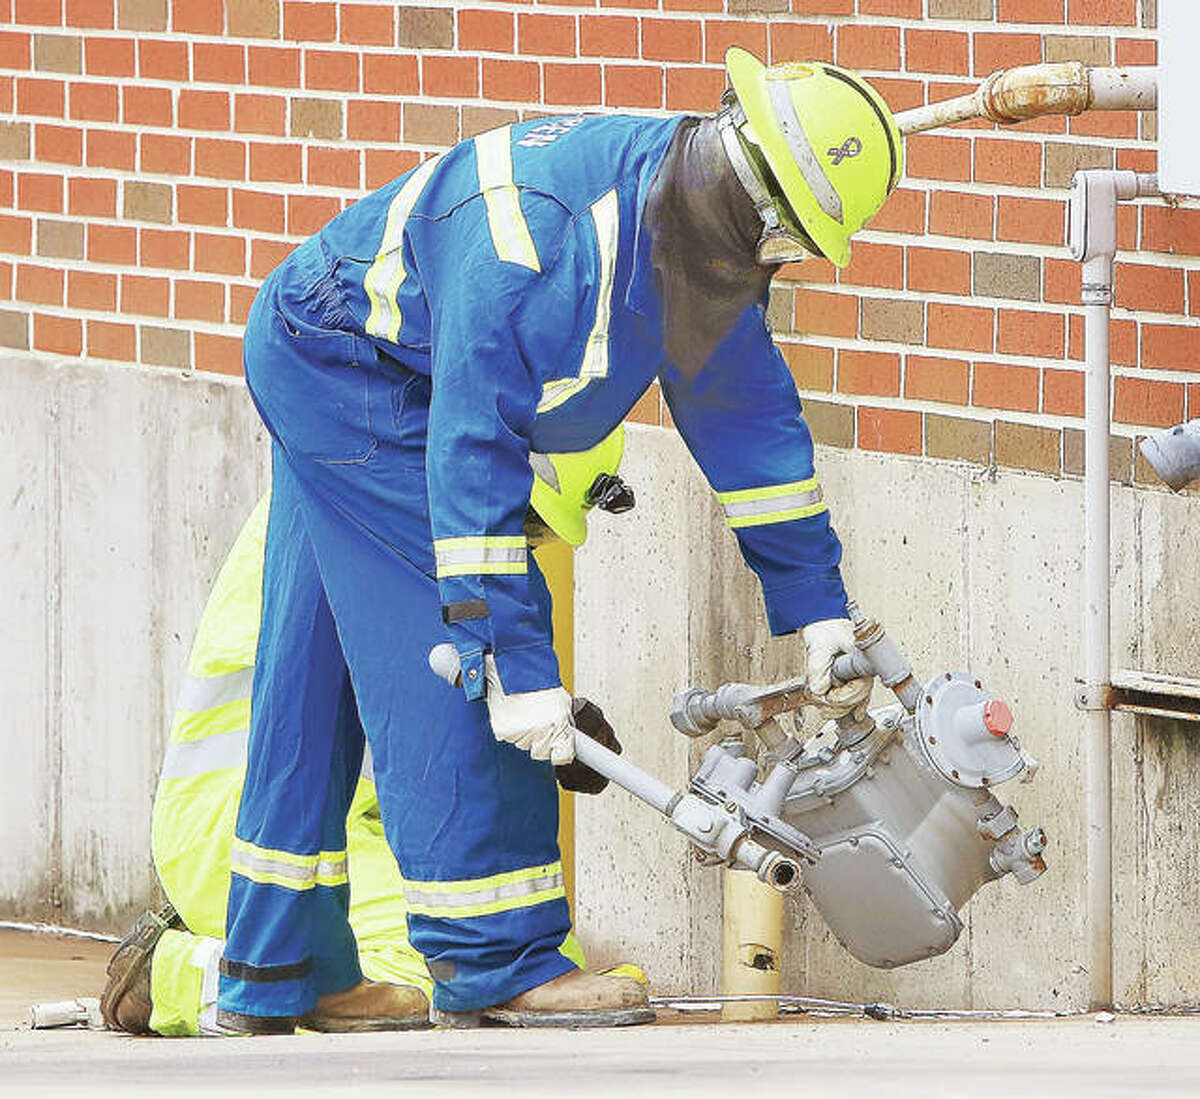 As if grocery stores and their customers weren't having enough probelms theses days, an evacuation of the Alton Aldi food store at 2822 Homer Adams Parkway on Tuesday did not help. Ameren Gas Division workers removed the broken gas meter from the rear of the store Tuesday morning after a long row of shopping carts rolled reportedly down a ramp and broke it off below the ground. Employees and customers were evacuated from the store during the 90 minutes it took Ameren to cut off the supply of gas to the line. No injuries were reported and most customers left after about 30 minutes of waiting in the parking lot.